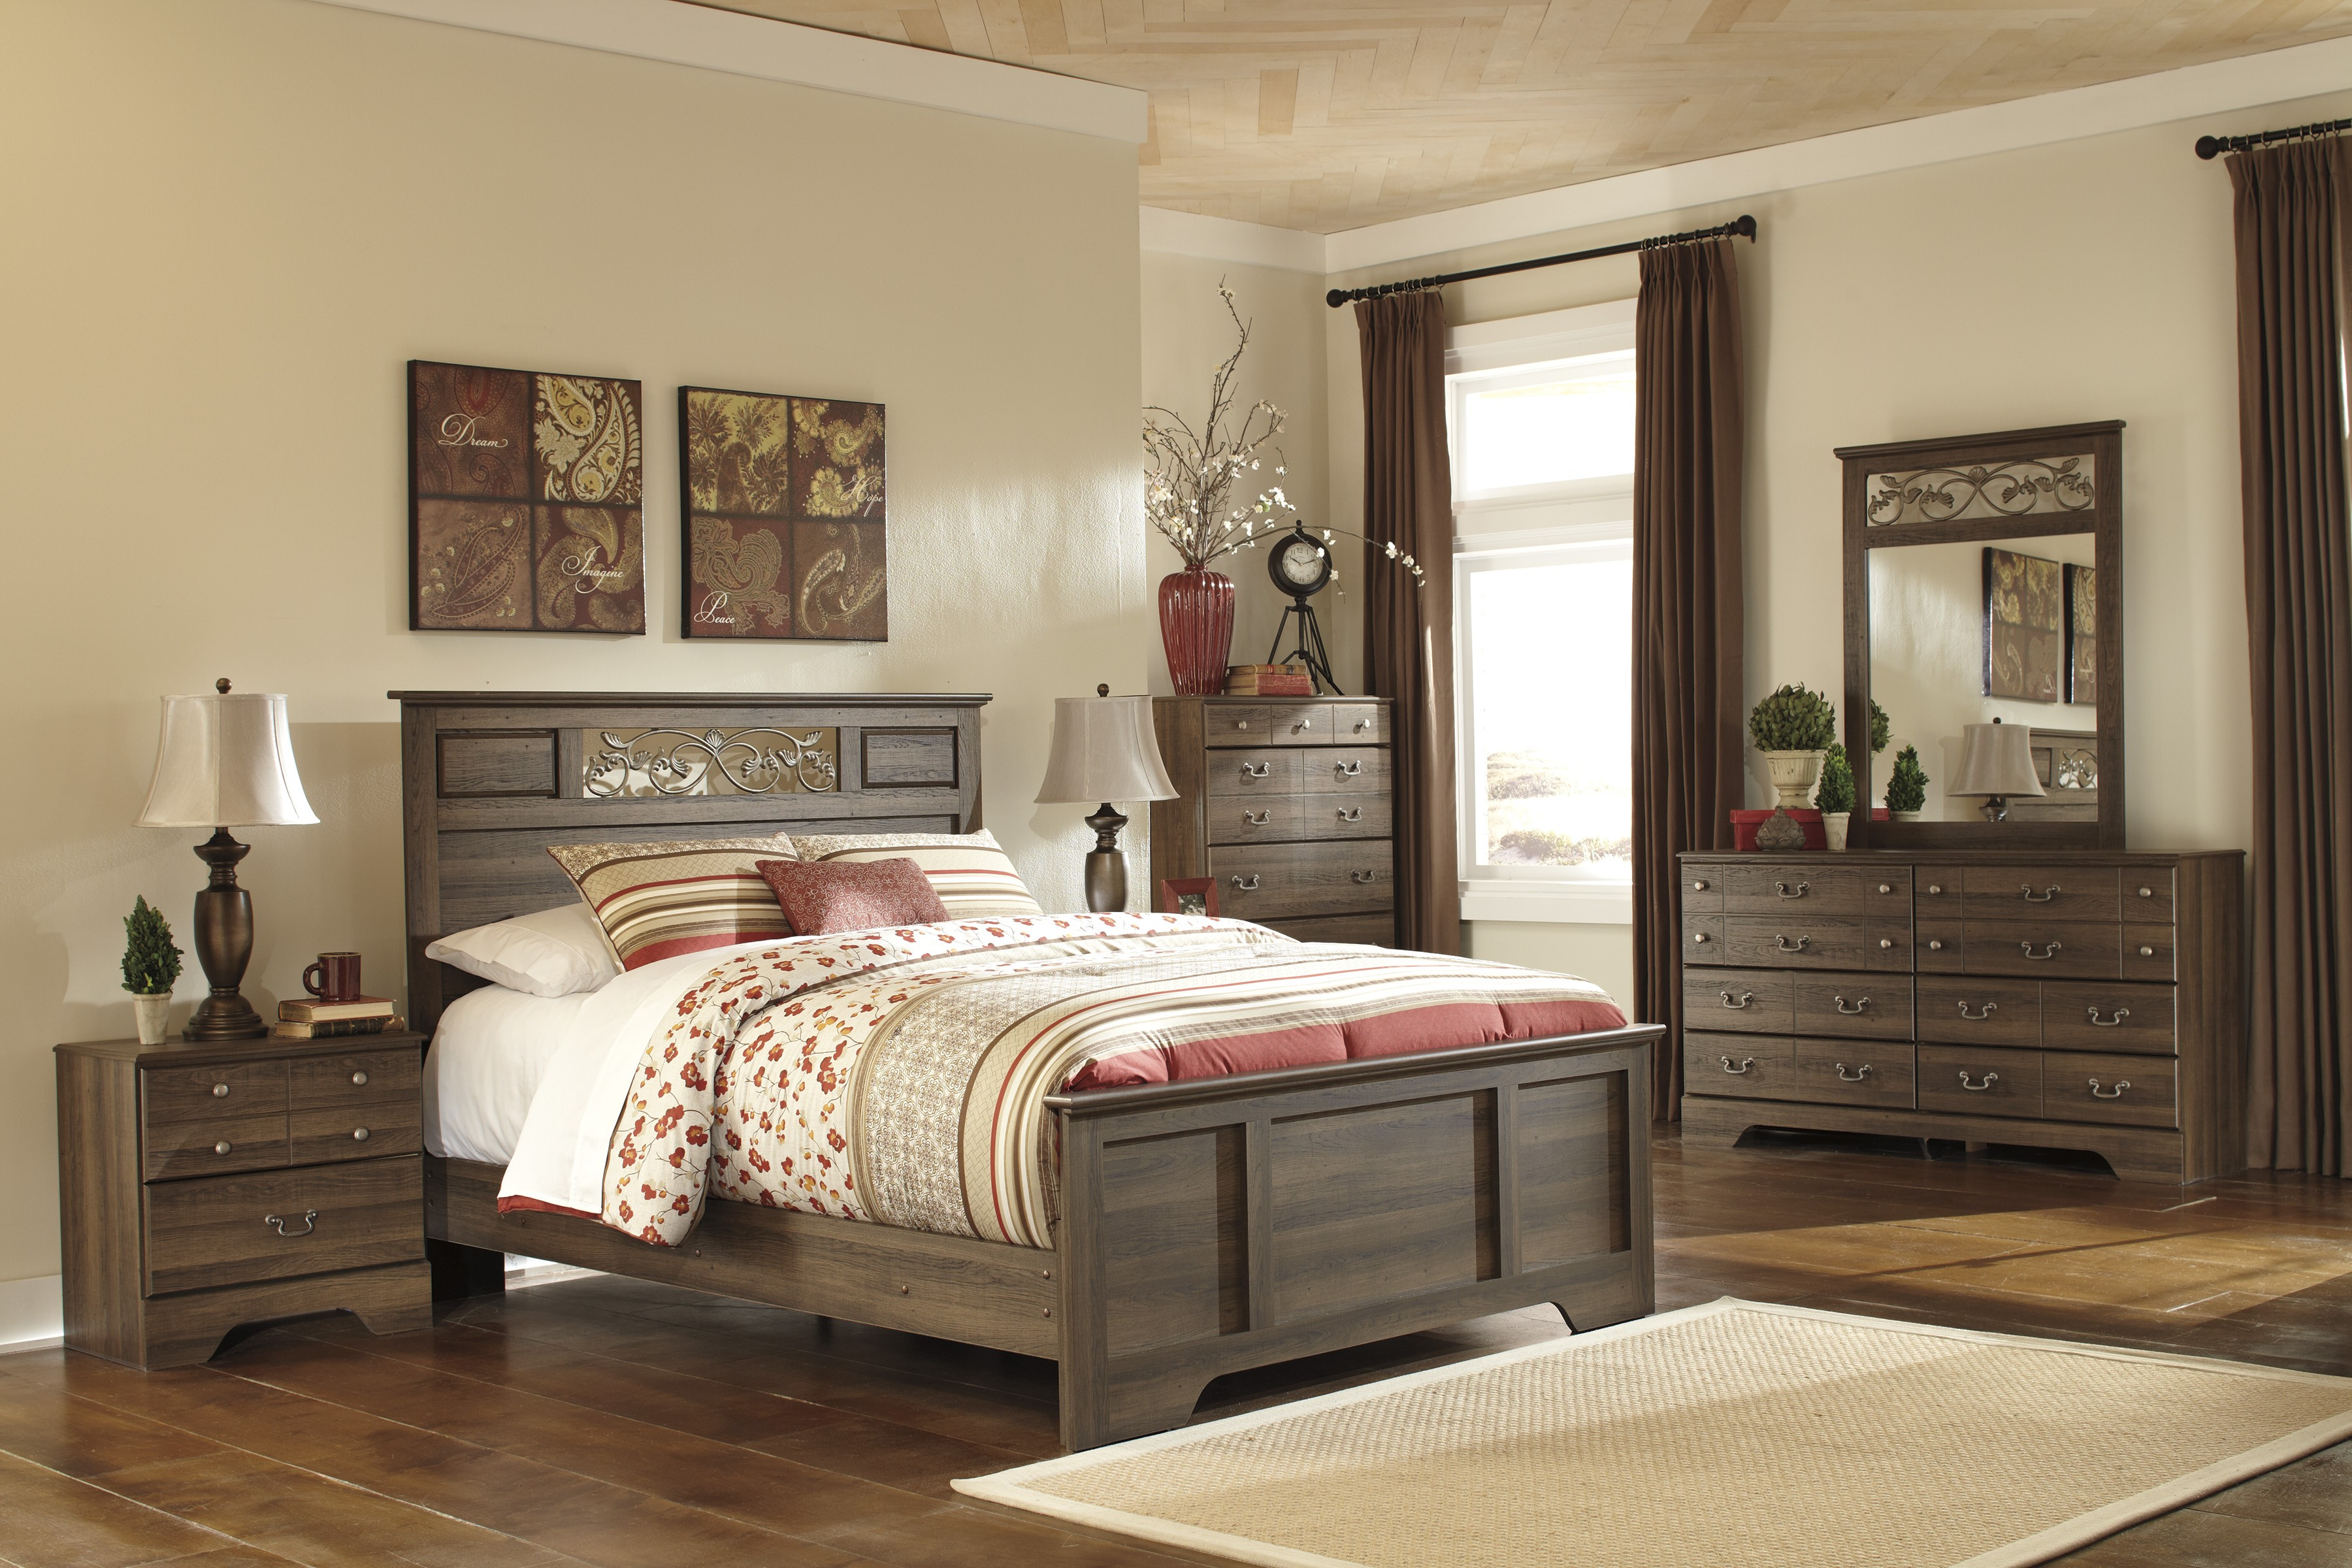 Allymore Panel Bedroom Set From Ashley B216 55 51 98